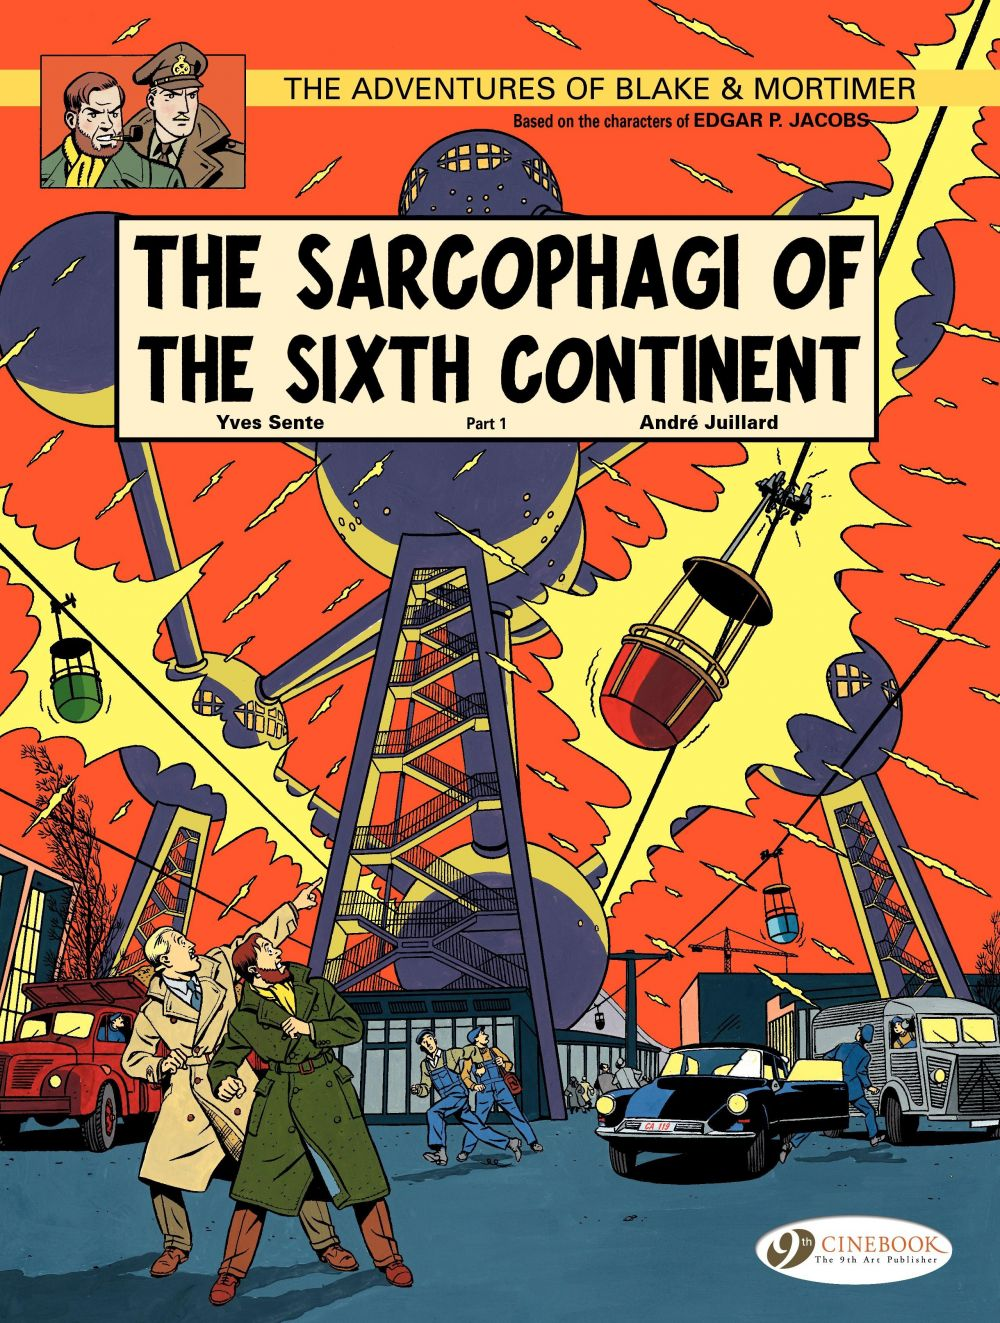 Blake & Mortimer - Volume 9 - The Sarcophagi of the Sixth Continent (Part 1)